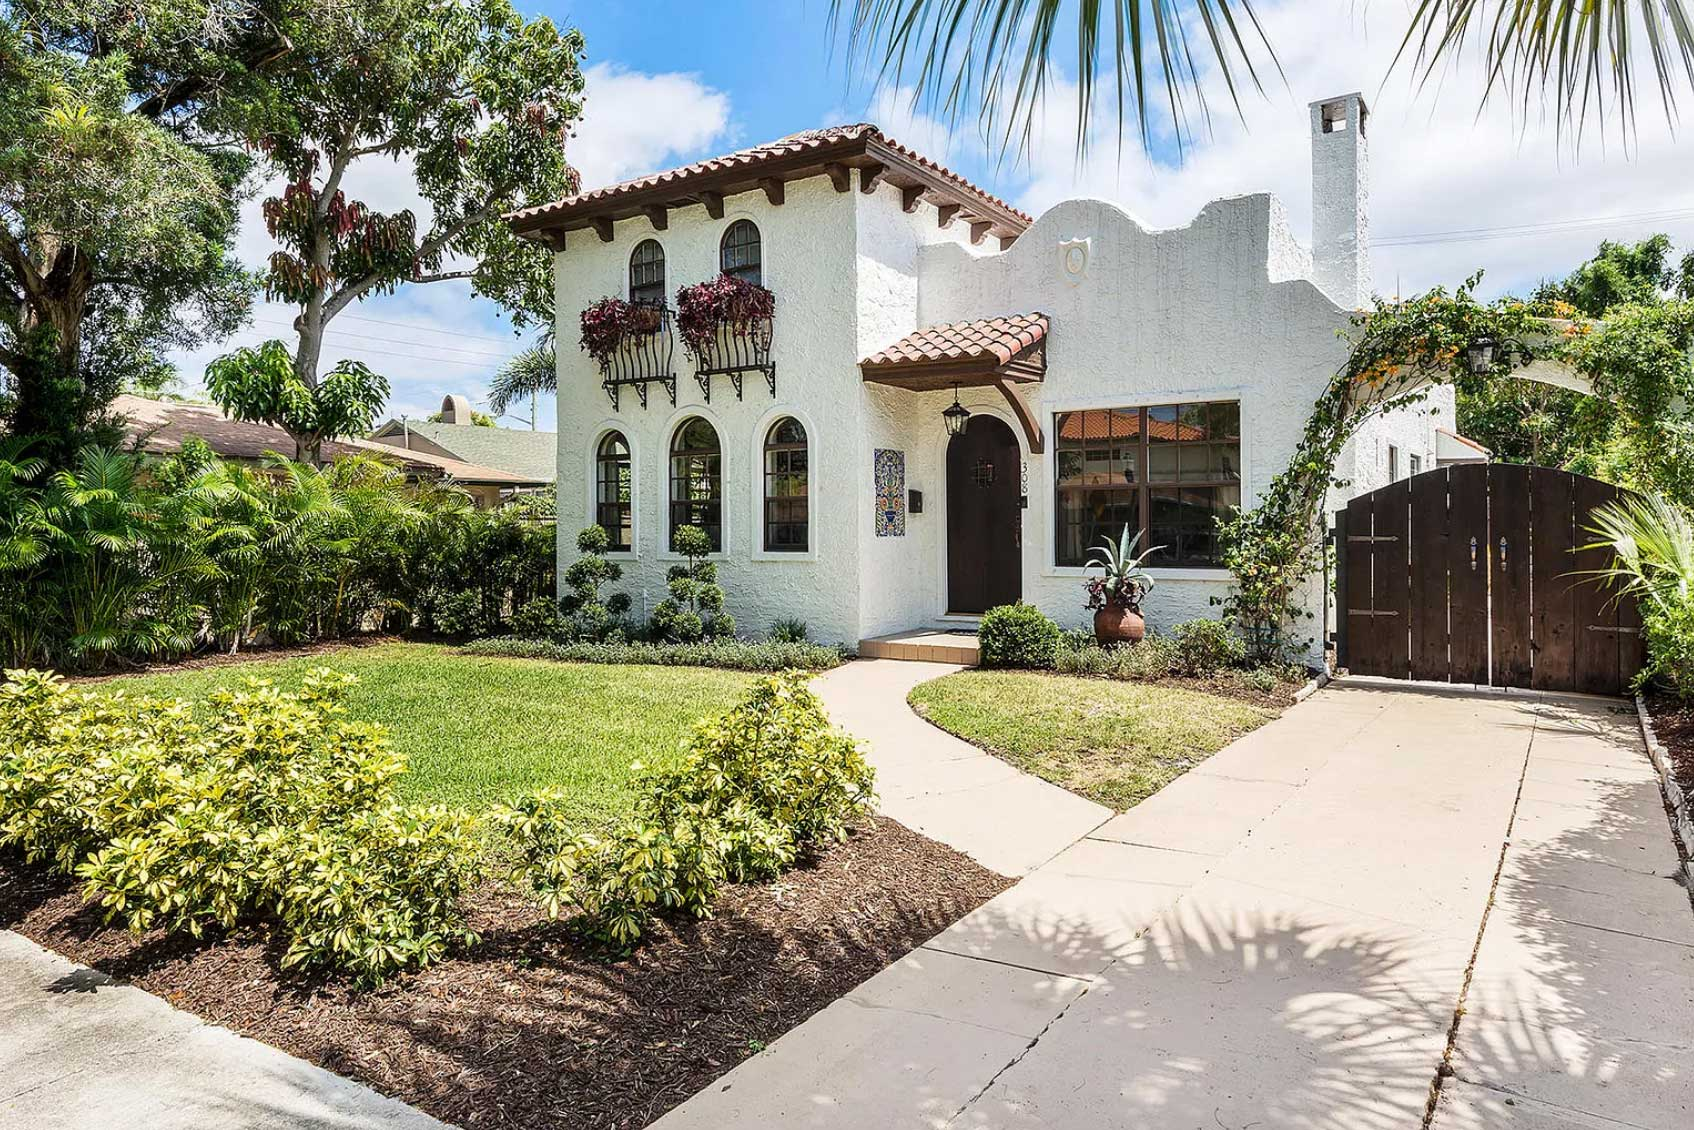 9 Beautiful Historic Houses For Sale In Southeast Florida Right Now Florida Smart